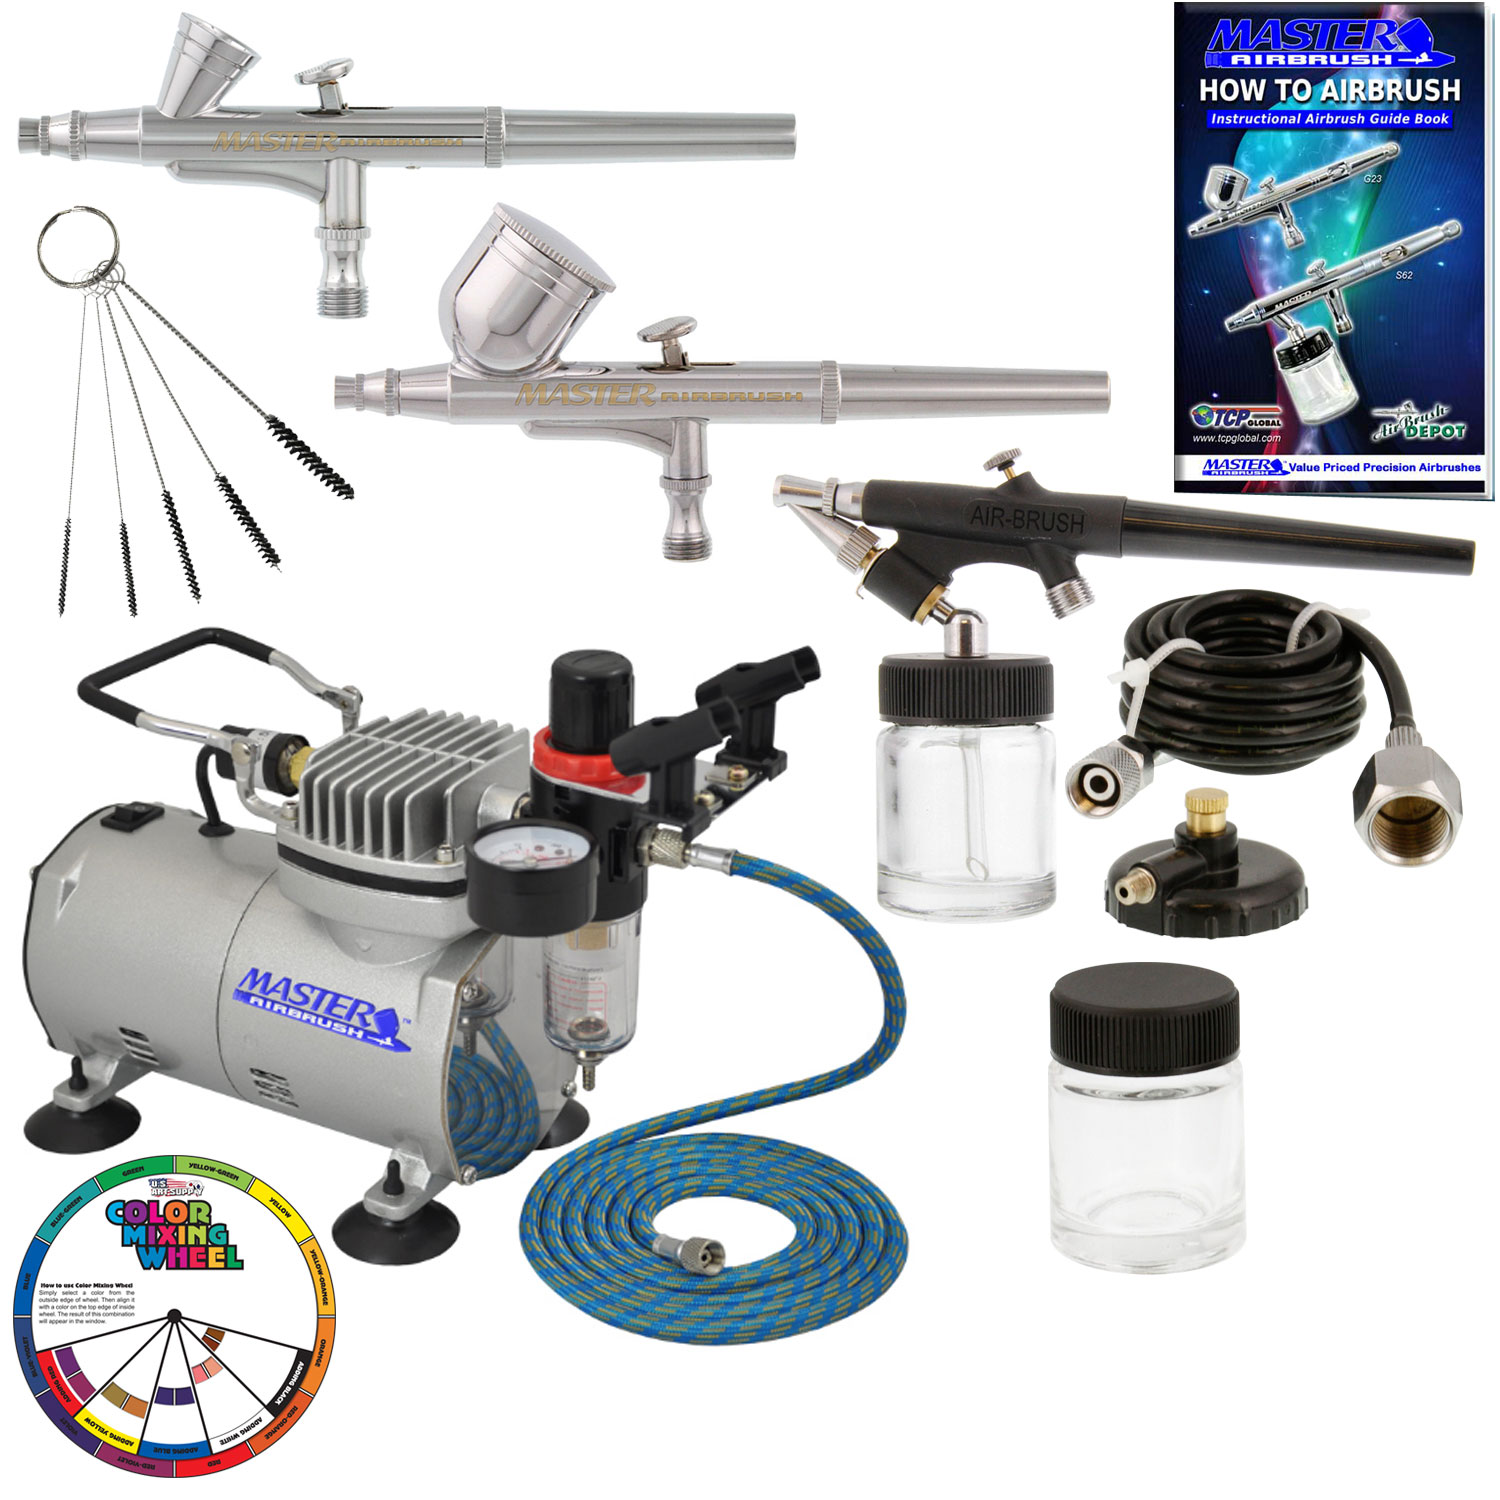 New 3 Airbrush Compressor Kit Dual Action Spray Air Brush Set